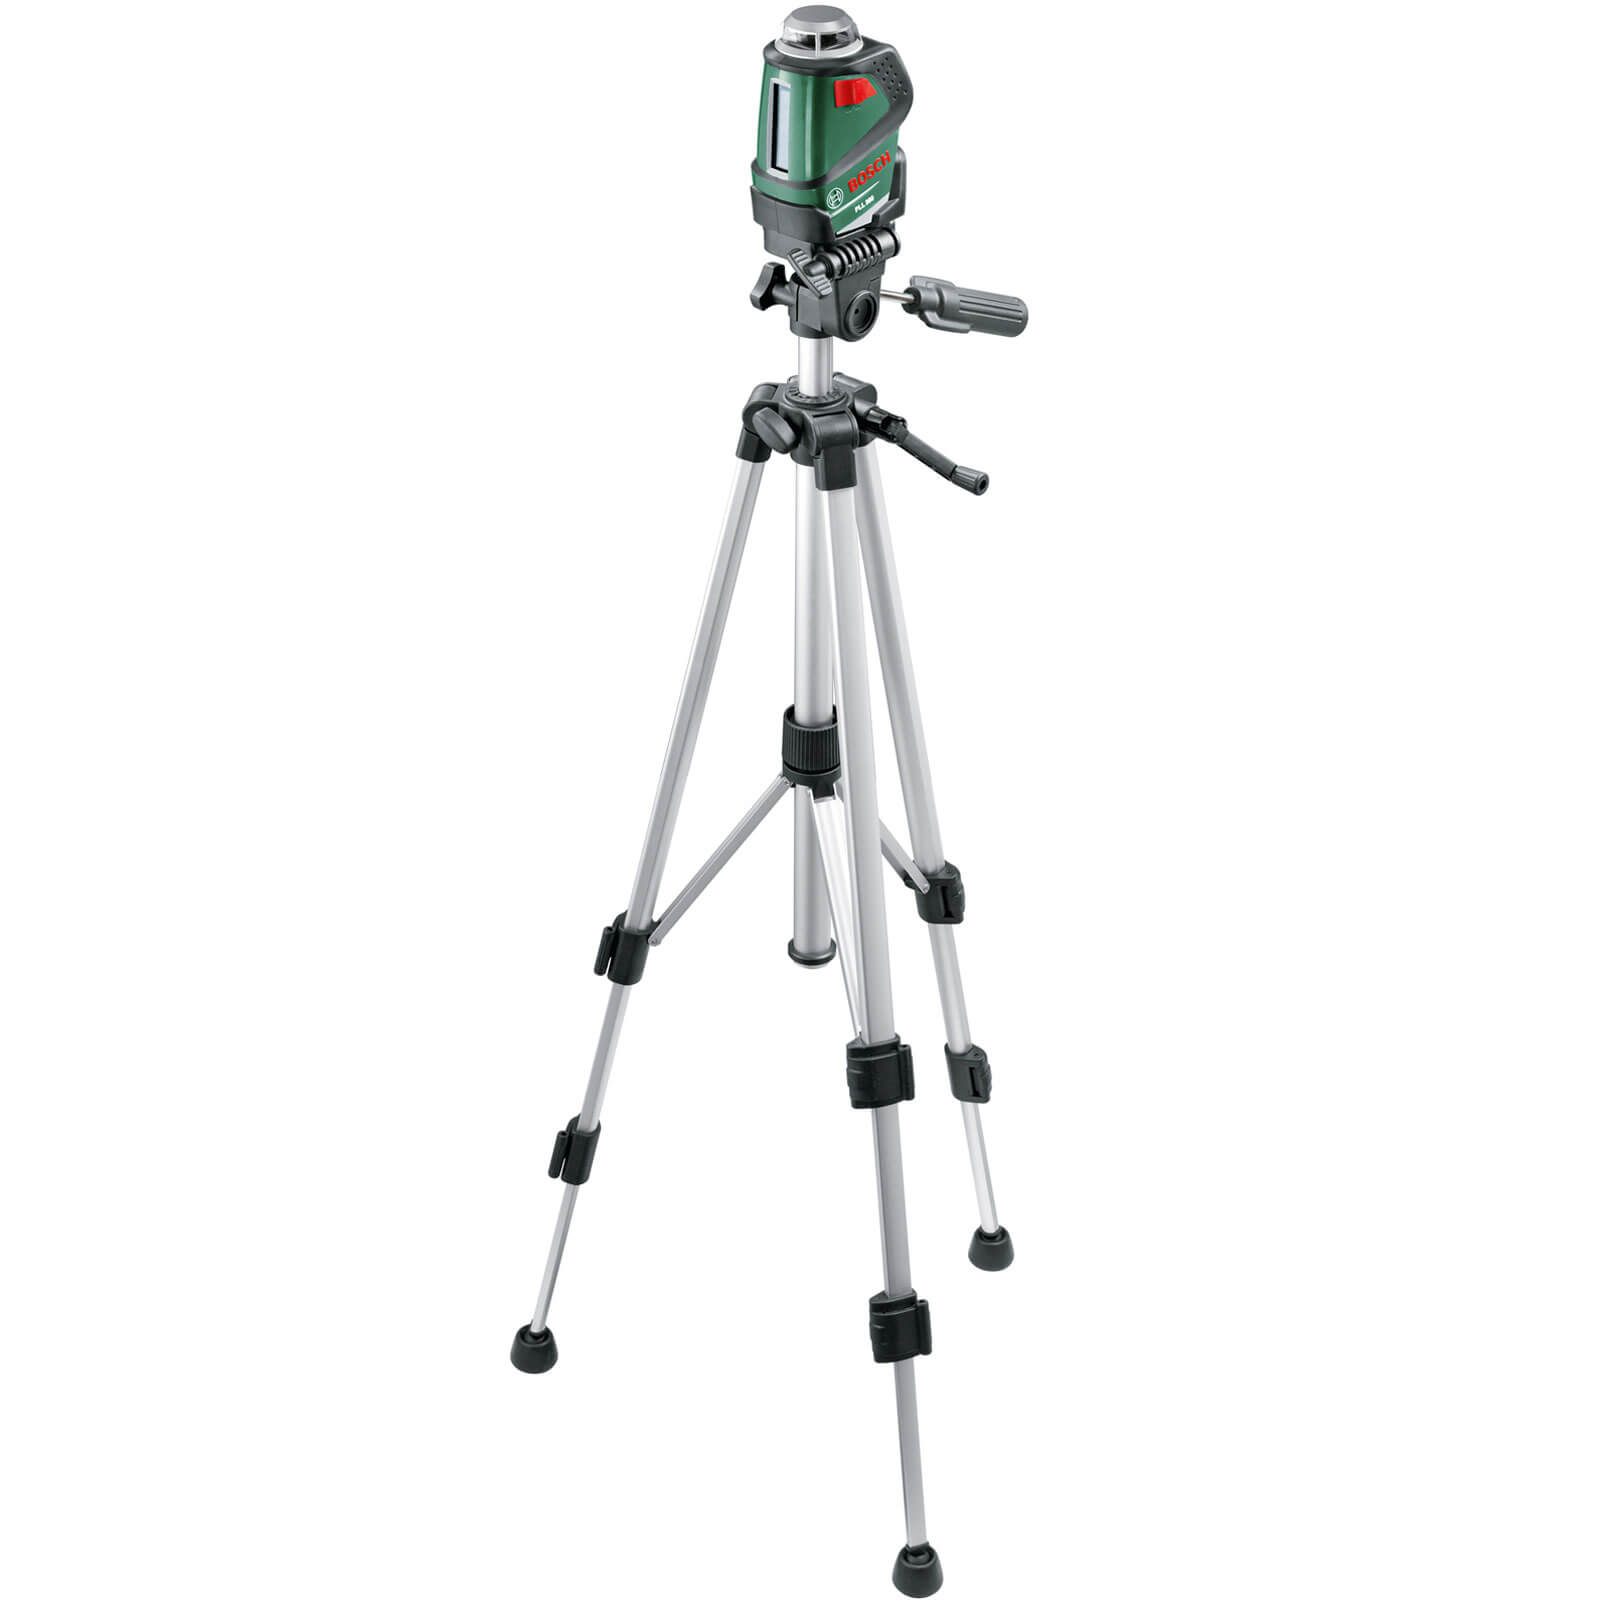 Bosch pll 360 self levelling line laser level with for Laser bosch pll 360